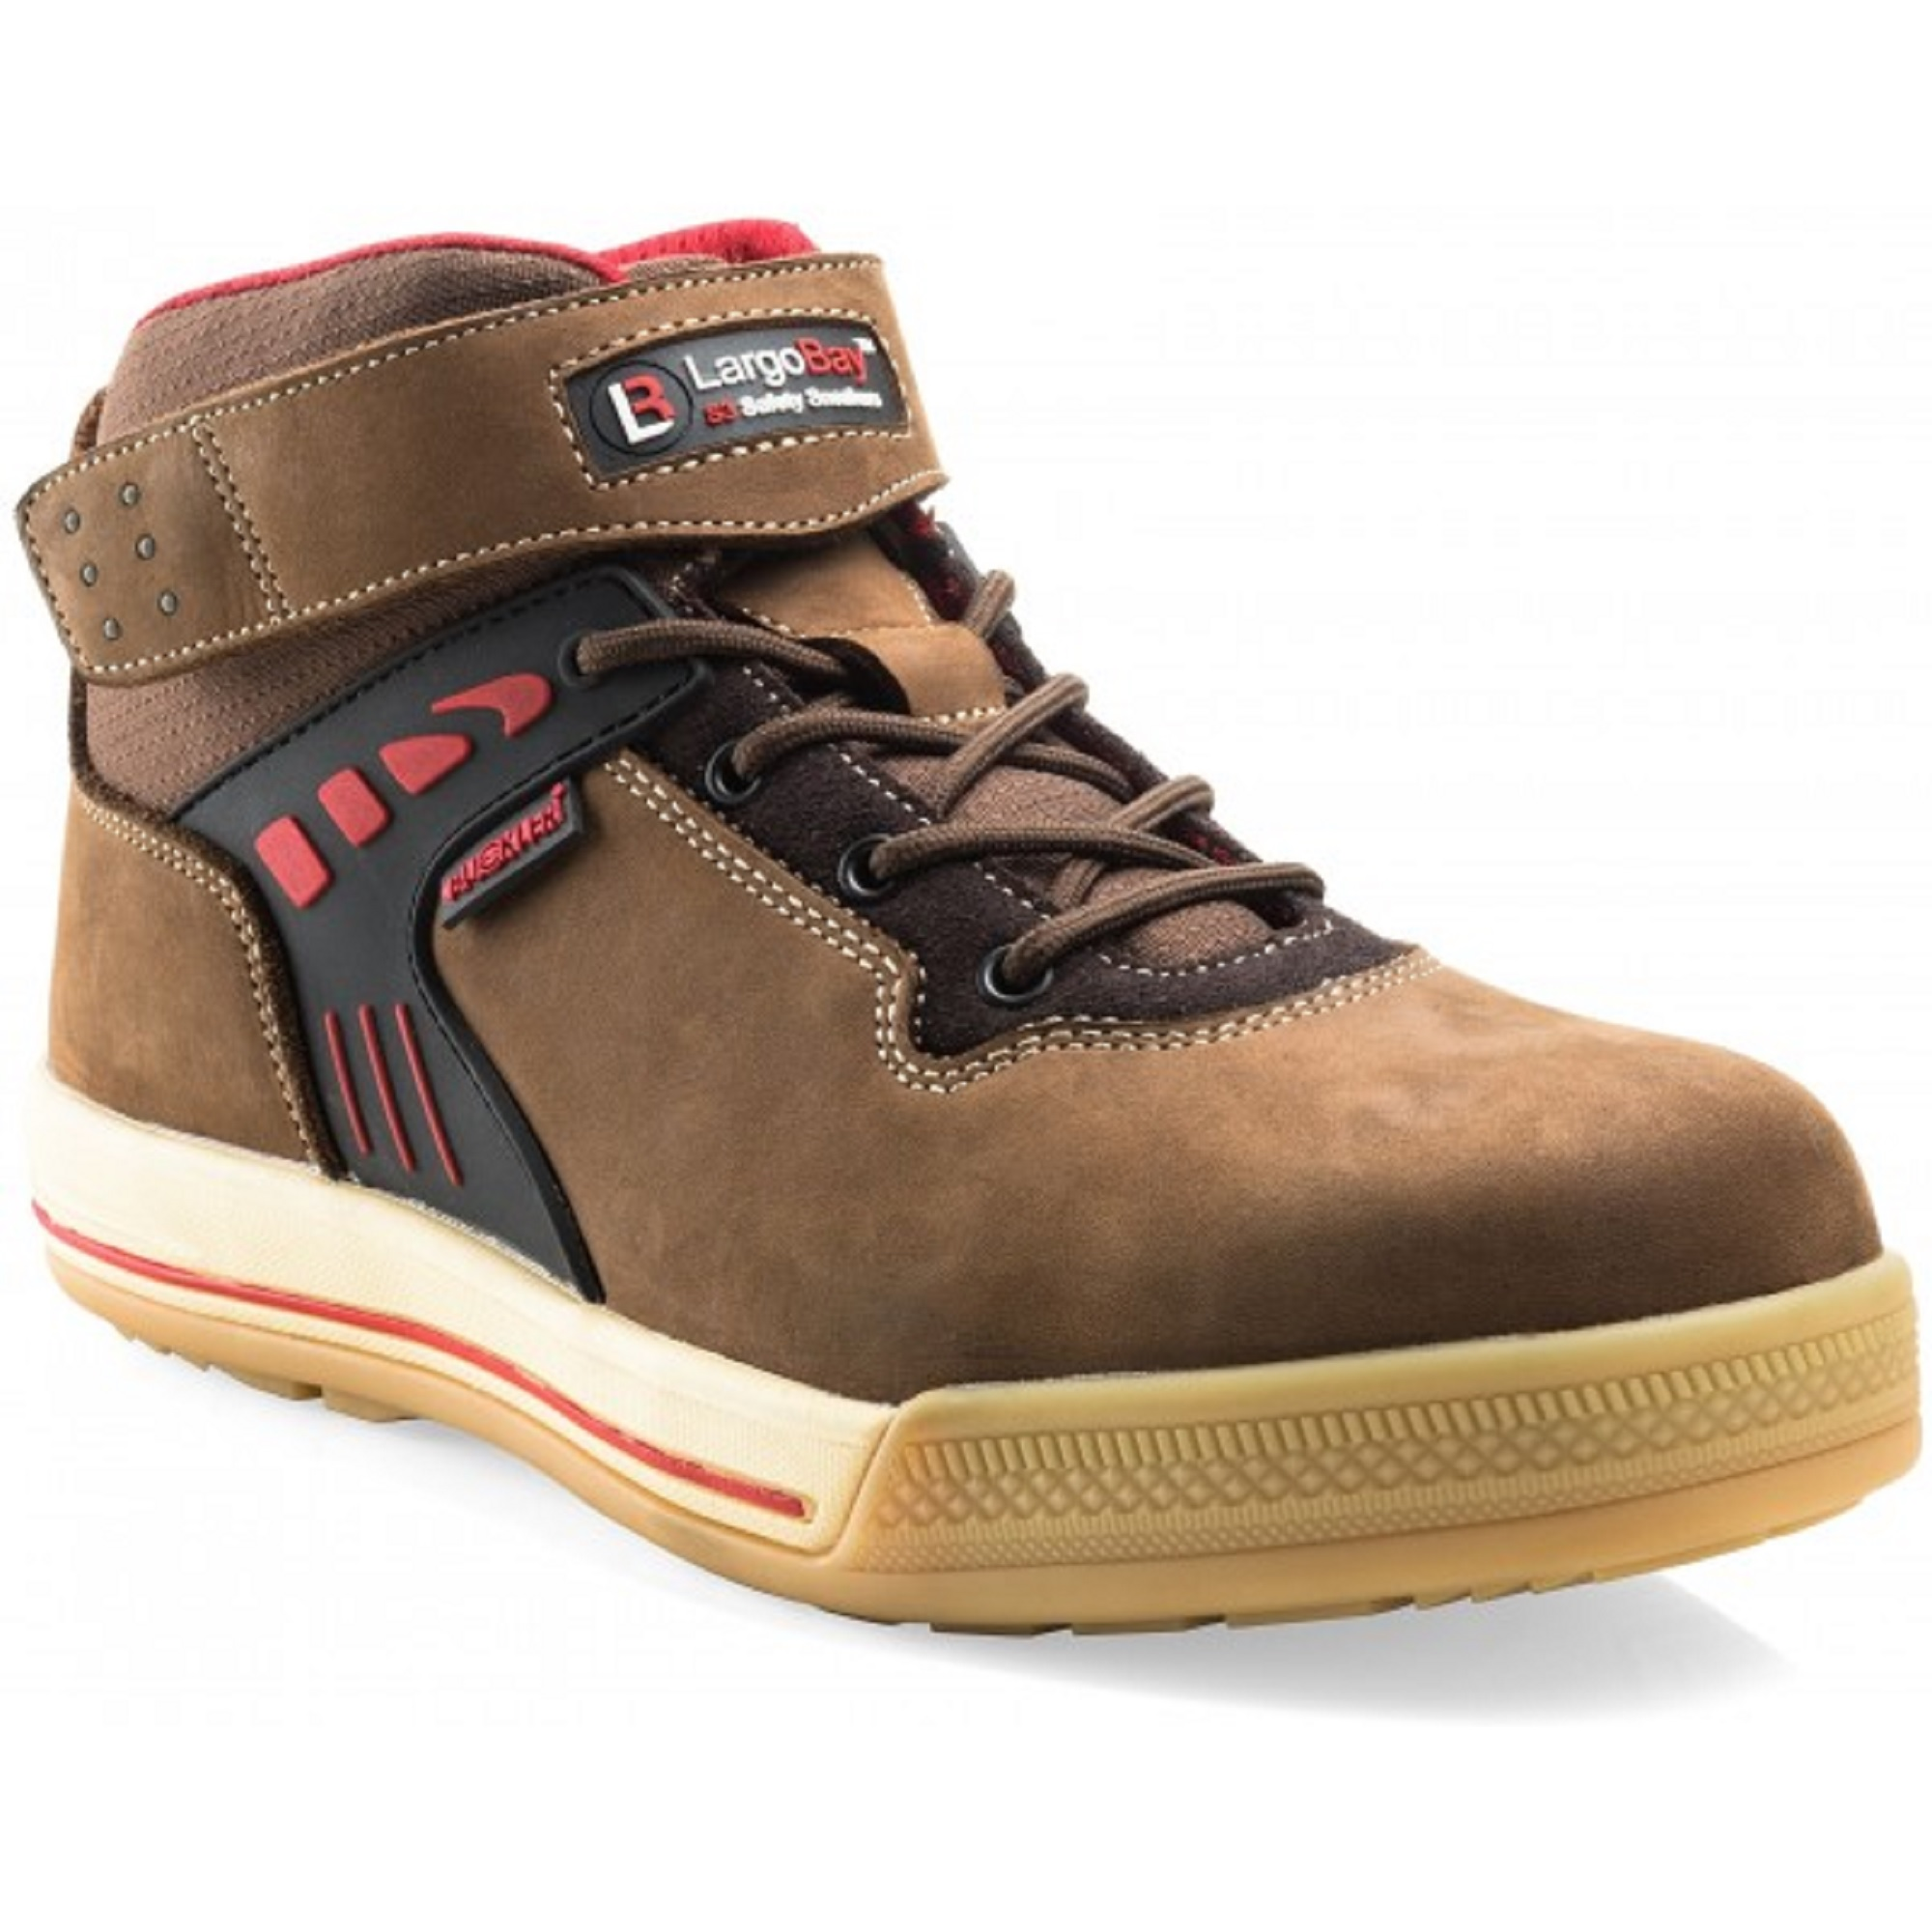 Brown leather Buckler Duke safety sneaker boot in a lace up design with red detailing and contrasting white stitching